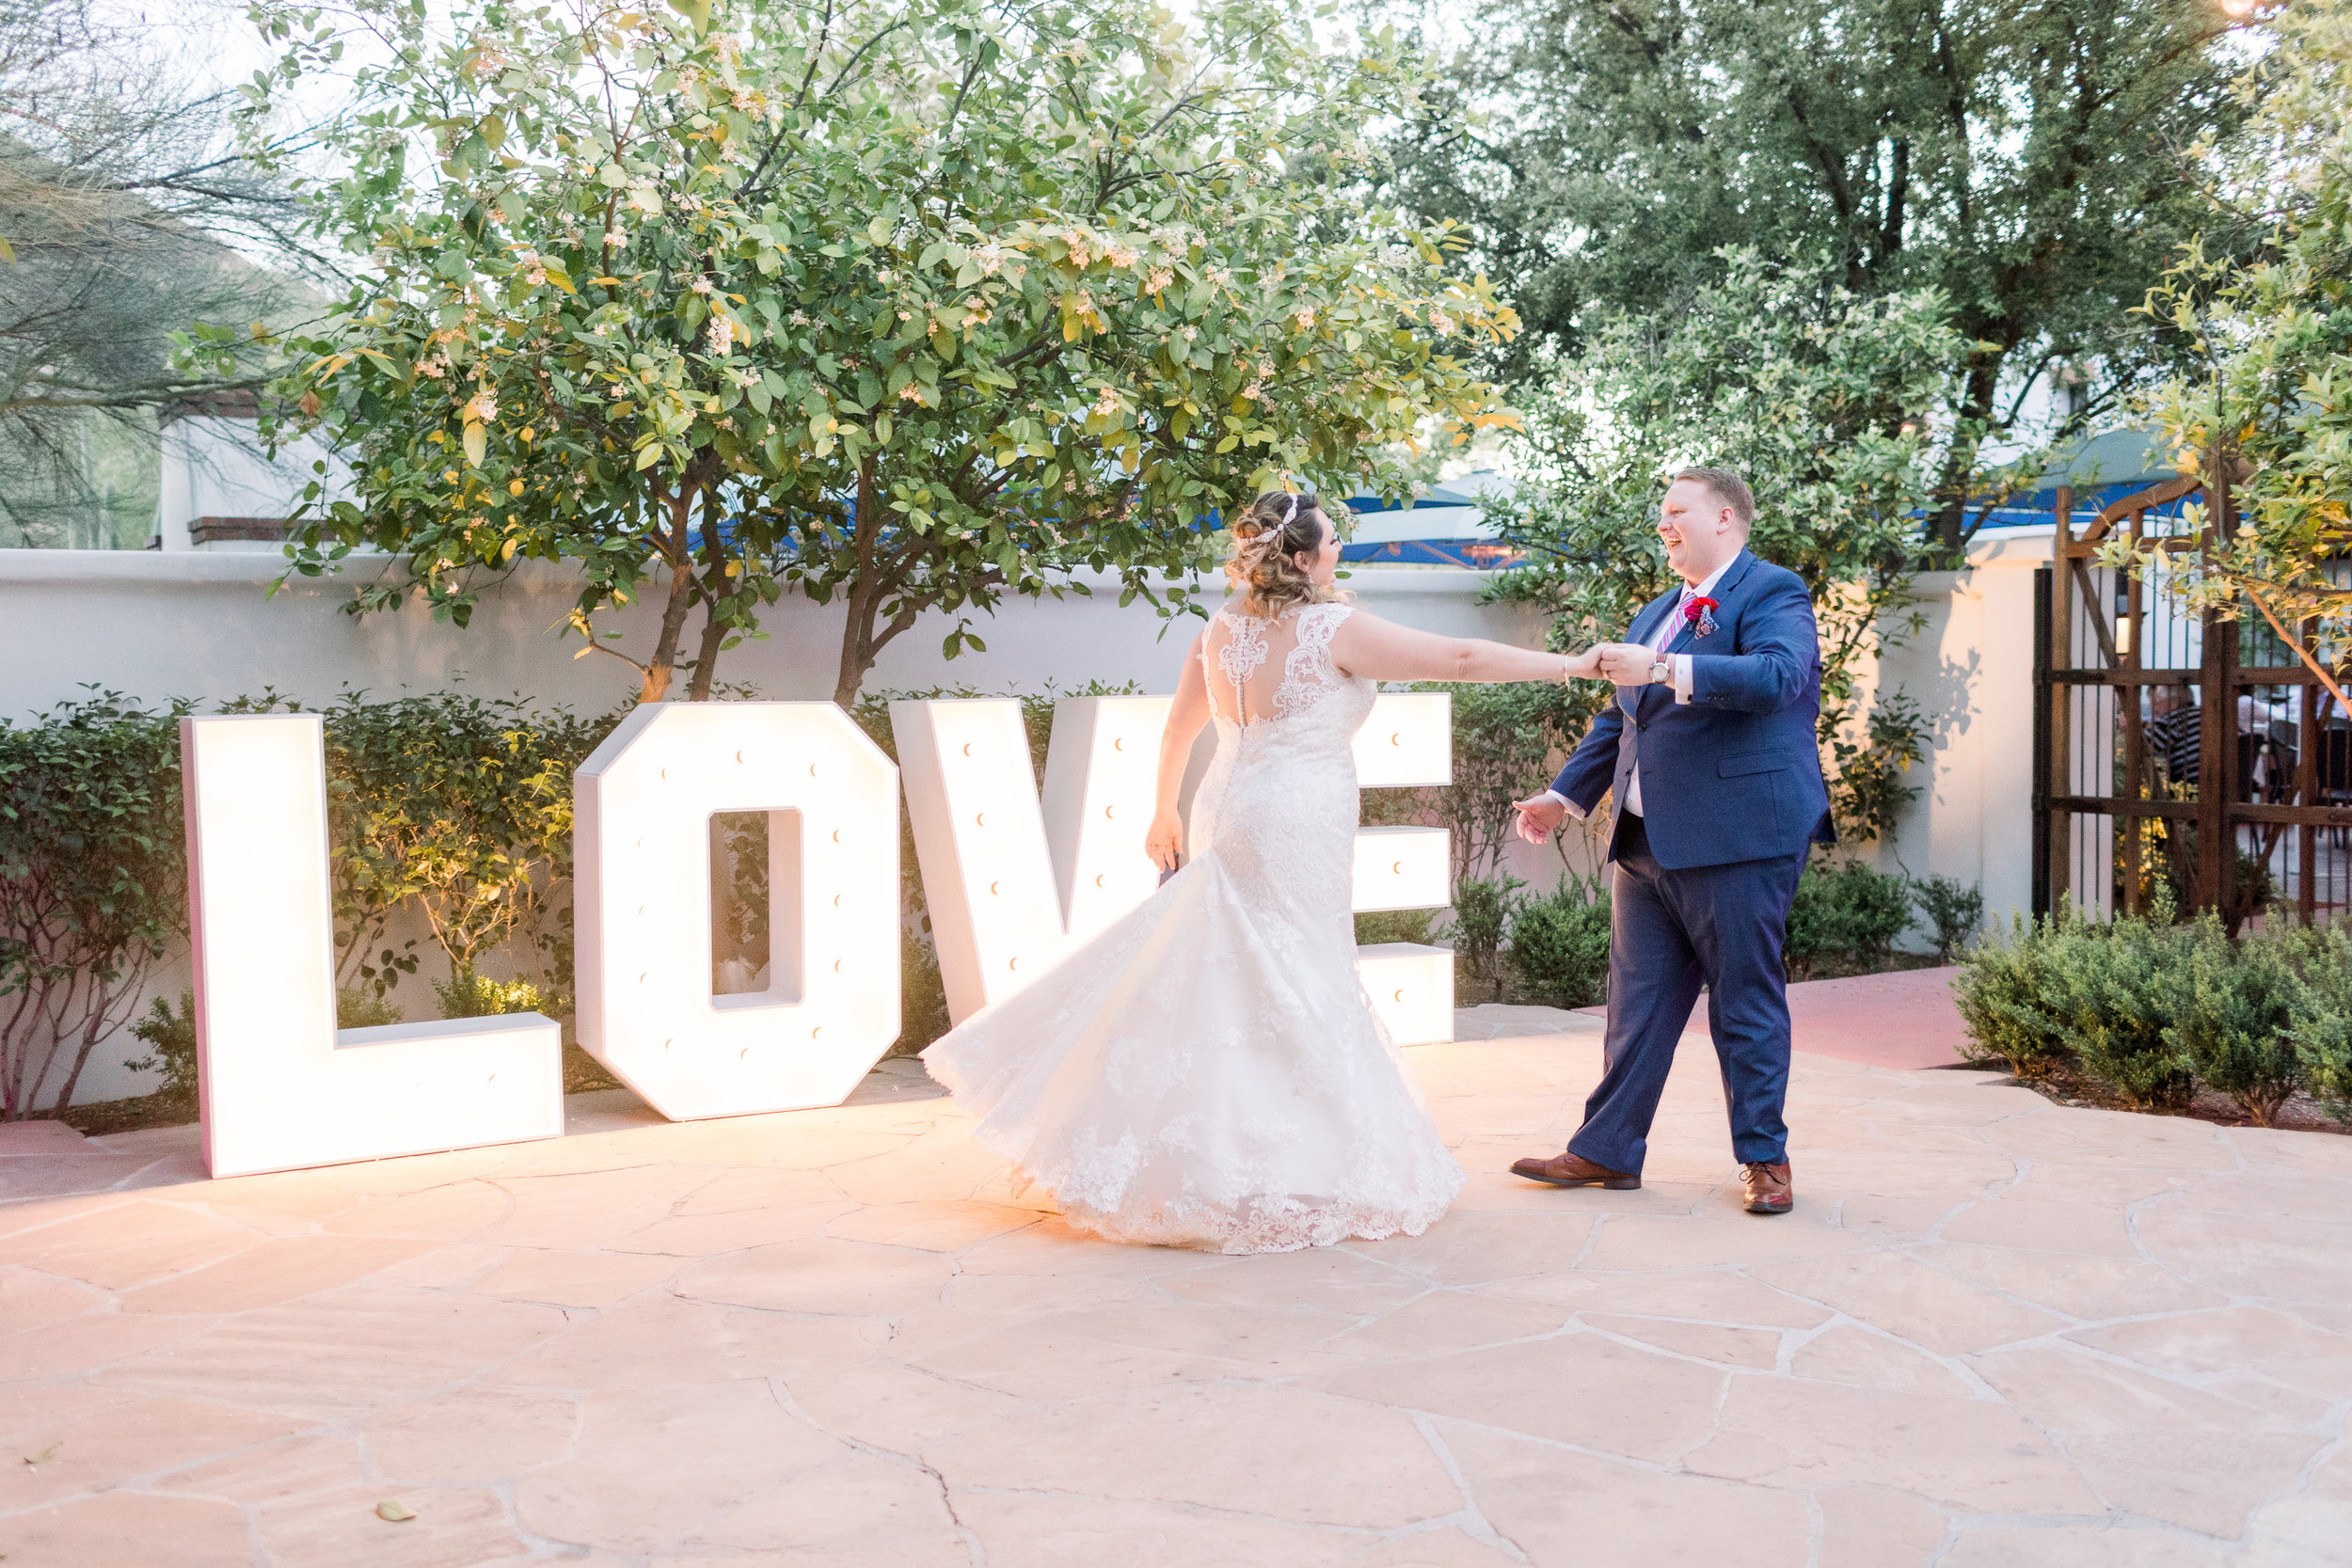 Roxanne and Brandon's El Chorro Wedding - Arizona florist Phoenix scottsdale Mesa chandler Sedona Prescott - First Dance with Marquee Love sign